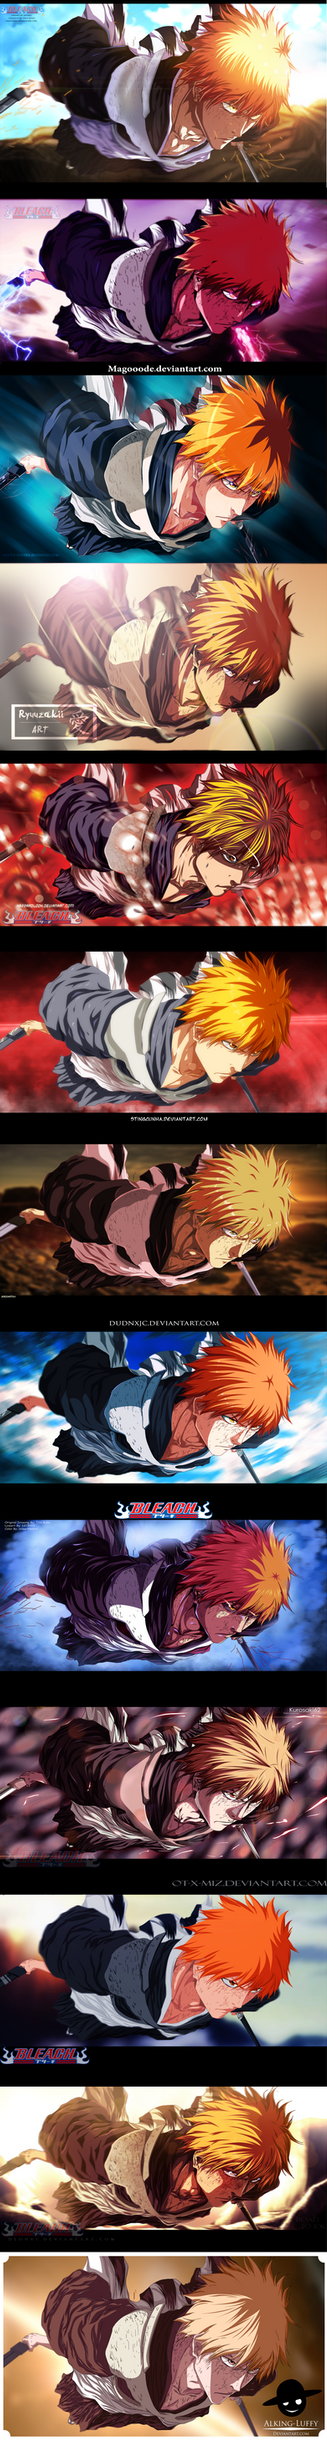 Bleach 585 Ichigo by Grimm6Jack